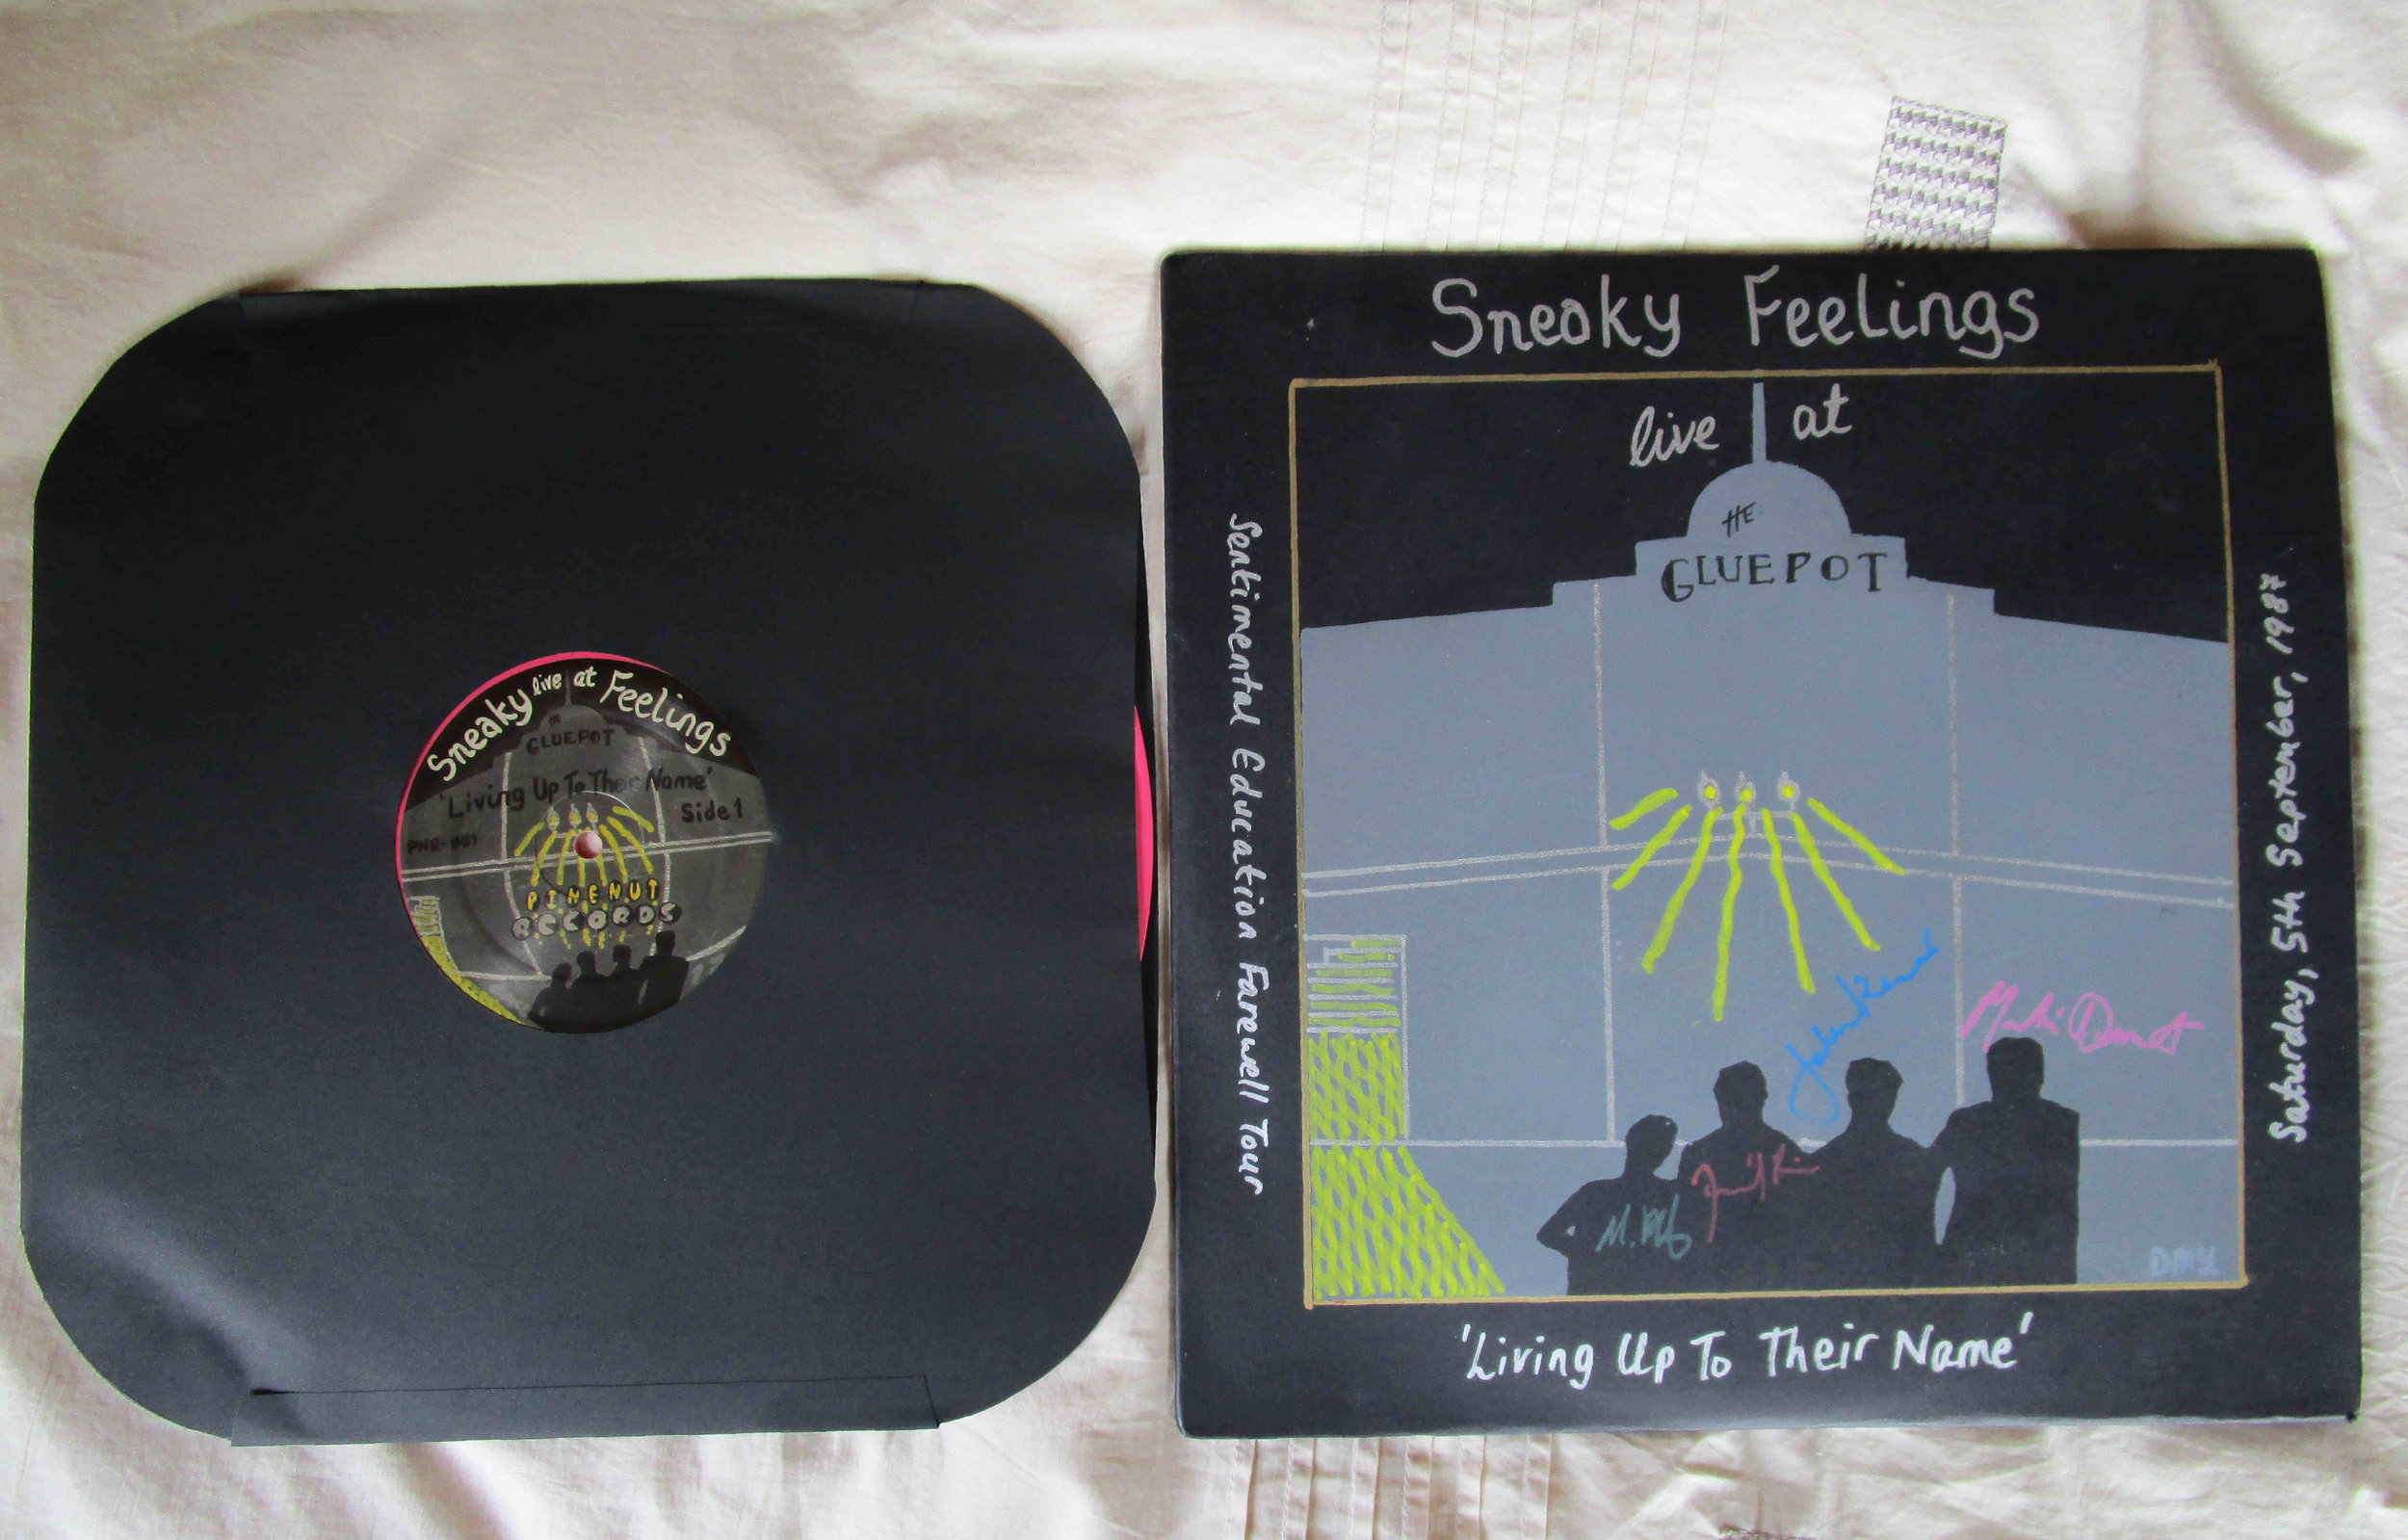 Sneaky Feelings LP 'Living Up To Their Name' Live At The Gluepot 1987 Collectors' and Limited Editions 180gsm Pink Vinyl    Pressed by United Record Pressing Nashville, TN, USA. One-off pressing of 300    Hand screen printed covers - heavy gauge solid black card flipback cover on collector's and limited editions, hand screen printed on standard white cover on Record Store Day Edition    Tape transfer and digital mastering by Steve McGough at Stebbing Recording Centre, Auckland, New Zealand    Launch date Monday 20th November, 2017    50 numbered copies on PInenut Records' first issue PNR-001, 16 of the 50 copies signed by the whole band    Plus a limited edition with various colour covers, with HD digital WAV download of full album, album format Side A/Side B    **************************************************************************************************************************************************************    Record Store Day 2018 'Black Sheep-White Sheep' edition LP 180g Pink Vinyl 150 copies made, with 6 bonus tracks on Bandcamp download, and a sew on tour patch issued at selected record shops across New Zealand and at Amoeba Music in LA and San Fran, California USD 40.00 plus P&P ** 10 left as of 09.05.19    *************************************************************************************************************************************************************    Record Store Day 2018 'Black Sheep-White Sheep' edition Cdr, with HD-WAV download card for the whole album, and sew on tour patch USD 20.00 plus P&P    ** SOLD OUT **    ************************************************************************************************************************************************************    Remastered limited issue (60 copies) of the 1984 Live At The WIndsor Castle tape PNR-002 originally issued on Industrial Tapes in 1984 sold with the collectors' edition only (50 copies worldwide) HD download closed **    ** SOLD OUT **    ***********************************************************************************************************************************************************    Collector's Edition Package Price USD 88.50 plus P&P (unsigned) with live tape + HD download + gig t-shirt    ** SOLD OUT **    ***********************************************************************************************************************************************************    Collector's Edition Package Price USD 98.50 plus P&P (signed) with live tape + HD download + gig t-shirt    ** SOLD OUT **    ***********************************************************************************************************************************************************    Record Projects In The Pipeline    Daggy and The Dickheads ('Daggies') High Country Rock compilation late 2019 in planning    Inquiries welcome